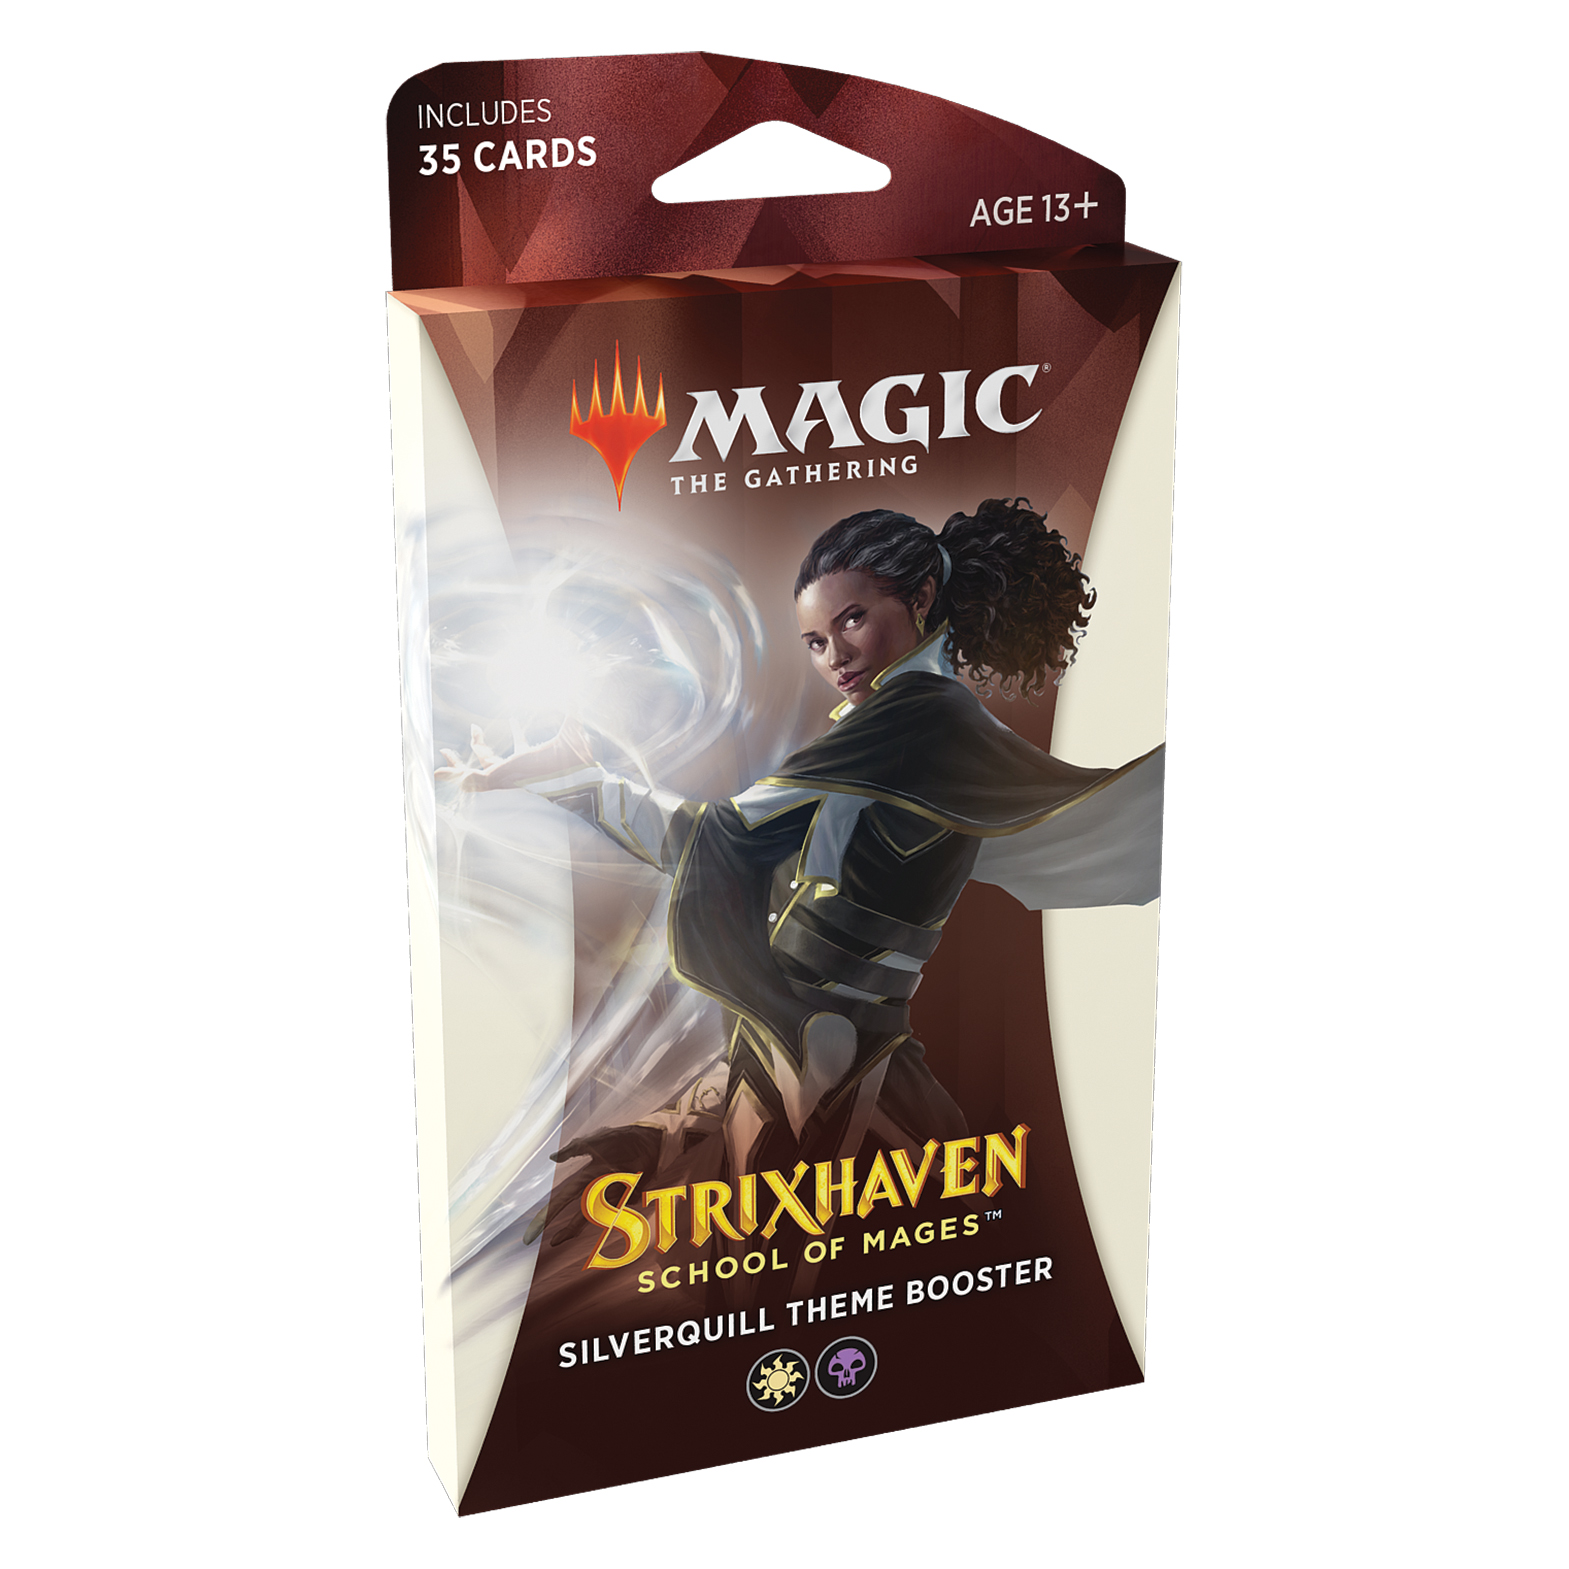 MTG STRIXHAVEN THEME BOOSTER SILVERQUILL INGLES